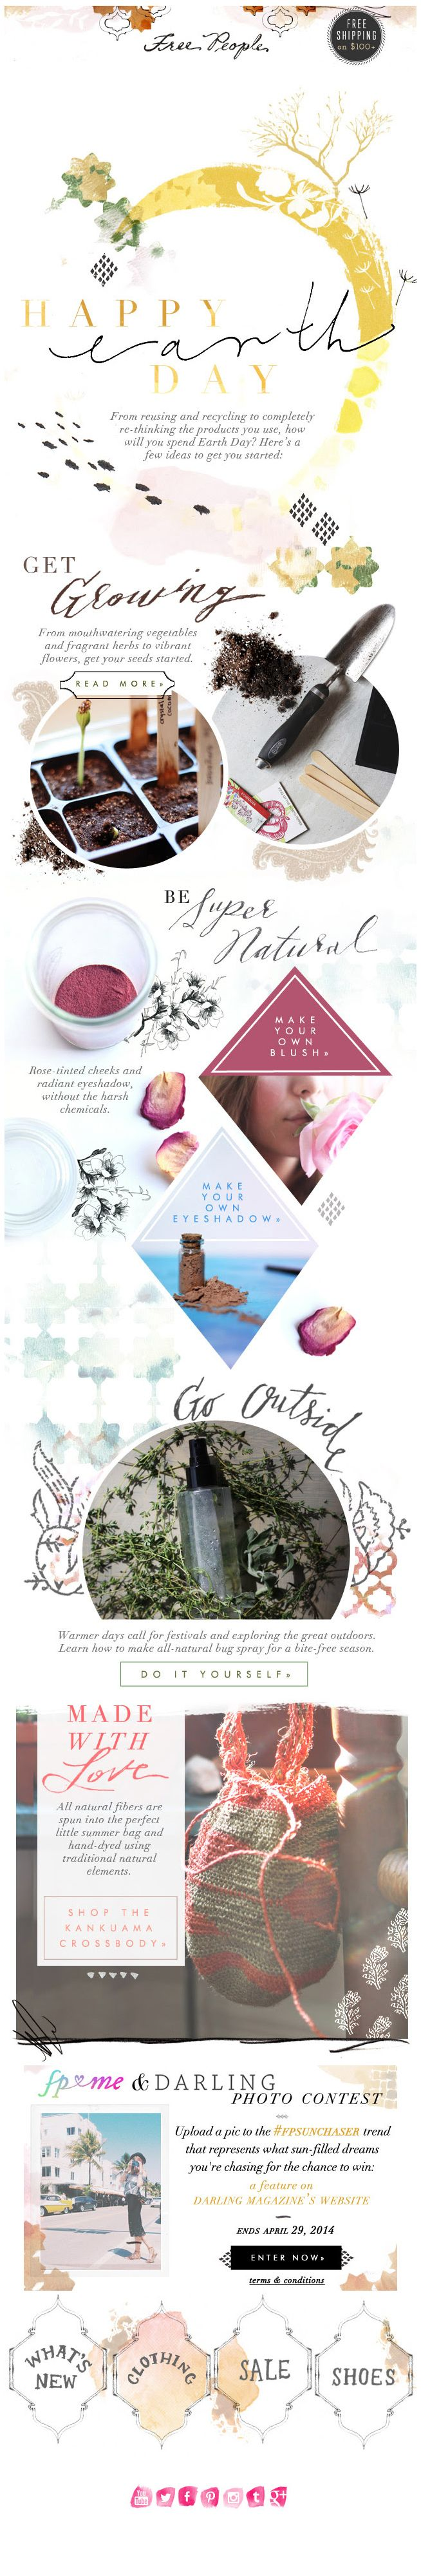 Free People : Earth Day newsletter, email design.